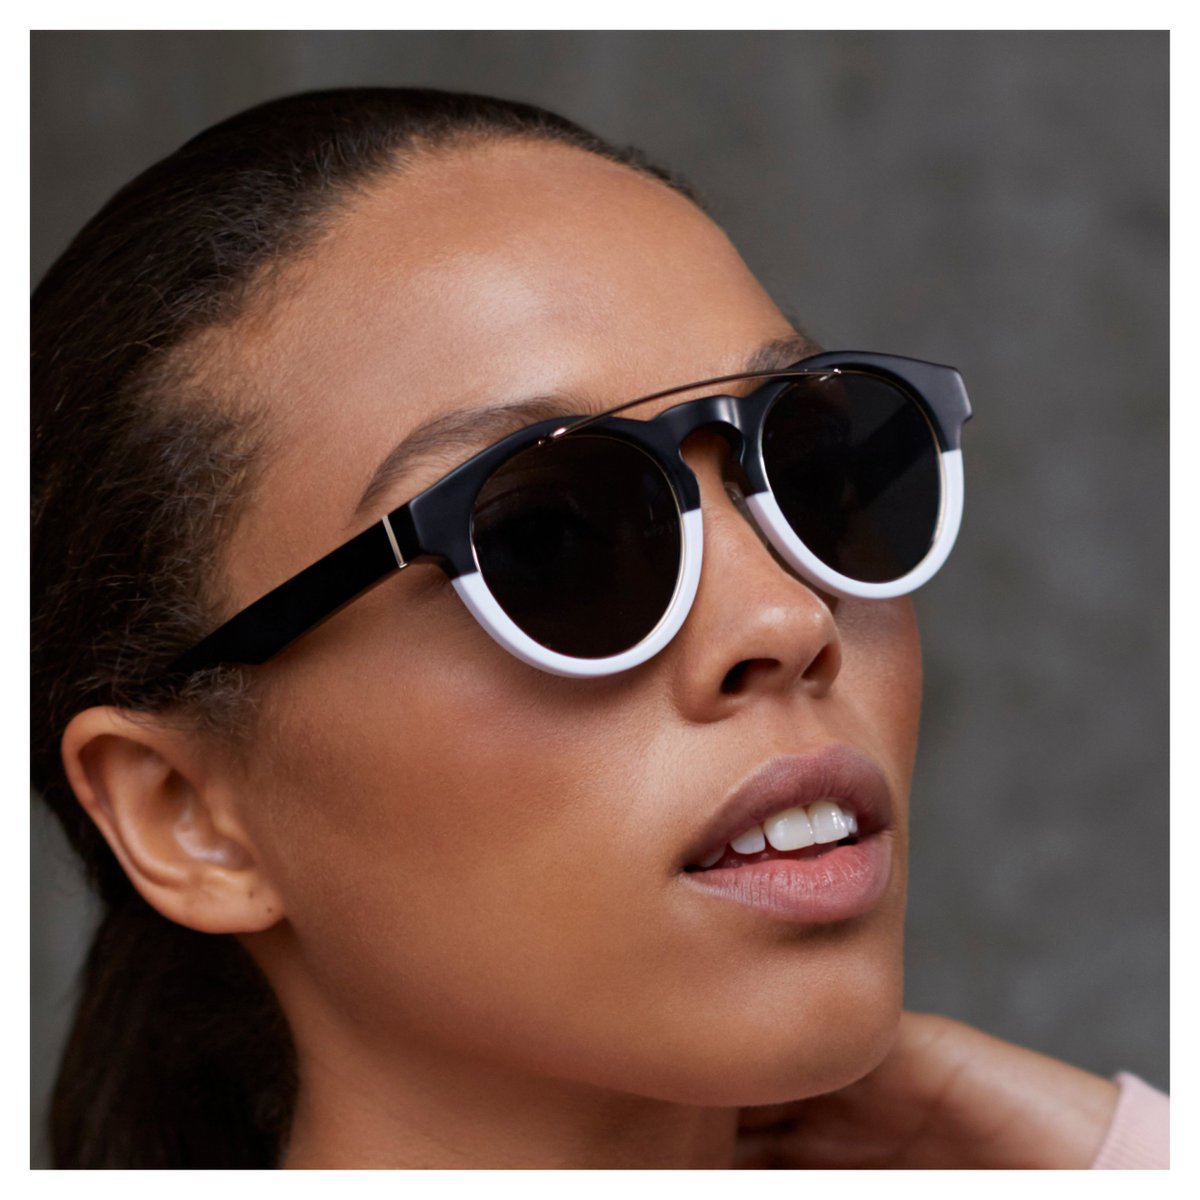 Eyeglass Frames That Are In Style Now : glasses in style now 2017 cheap sunglasses